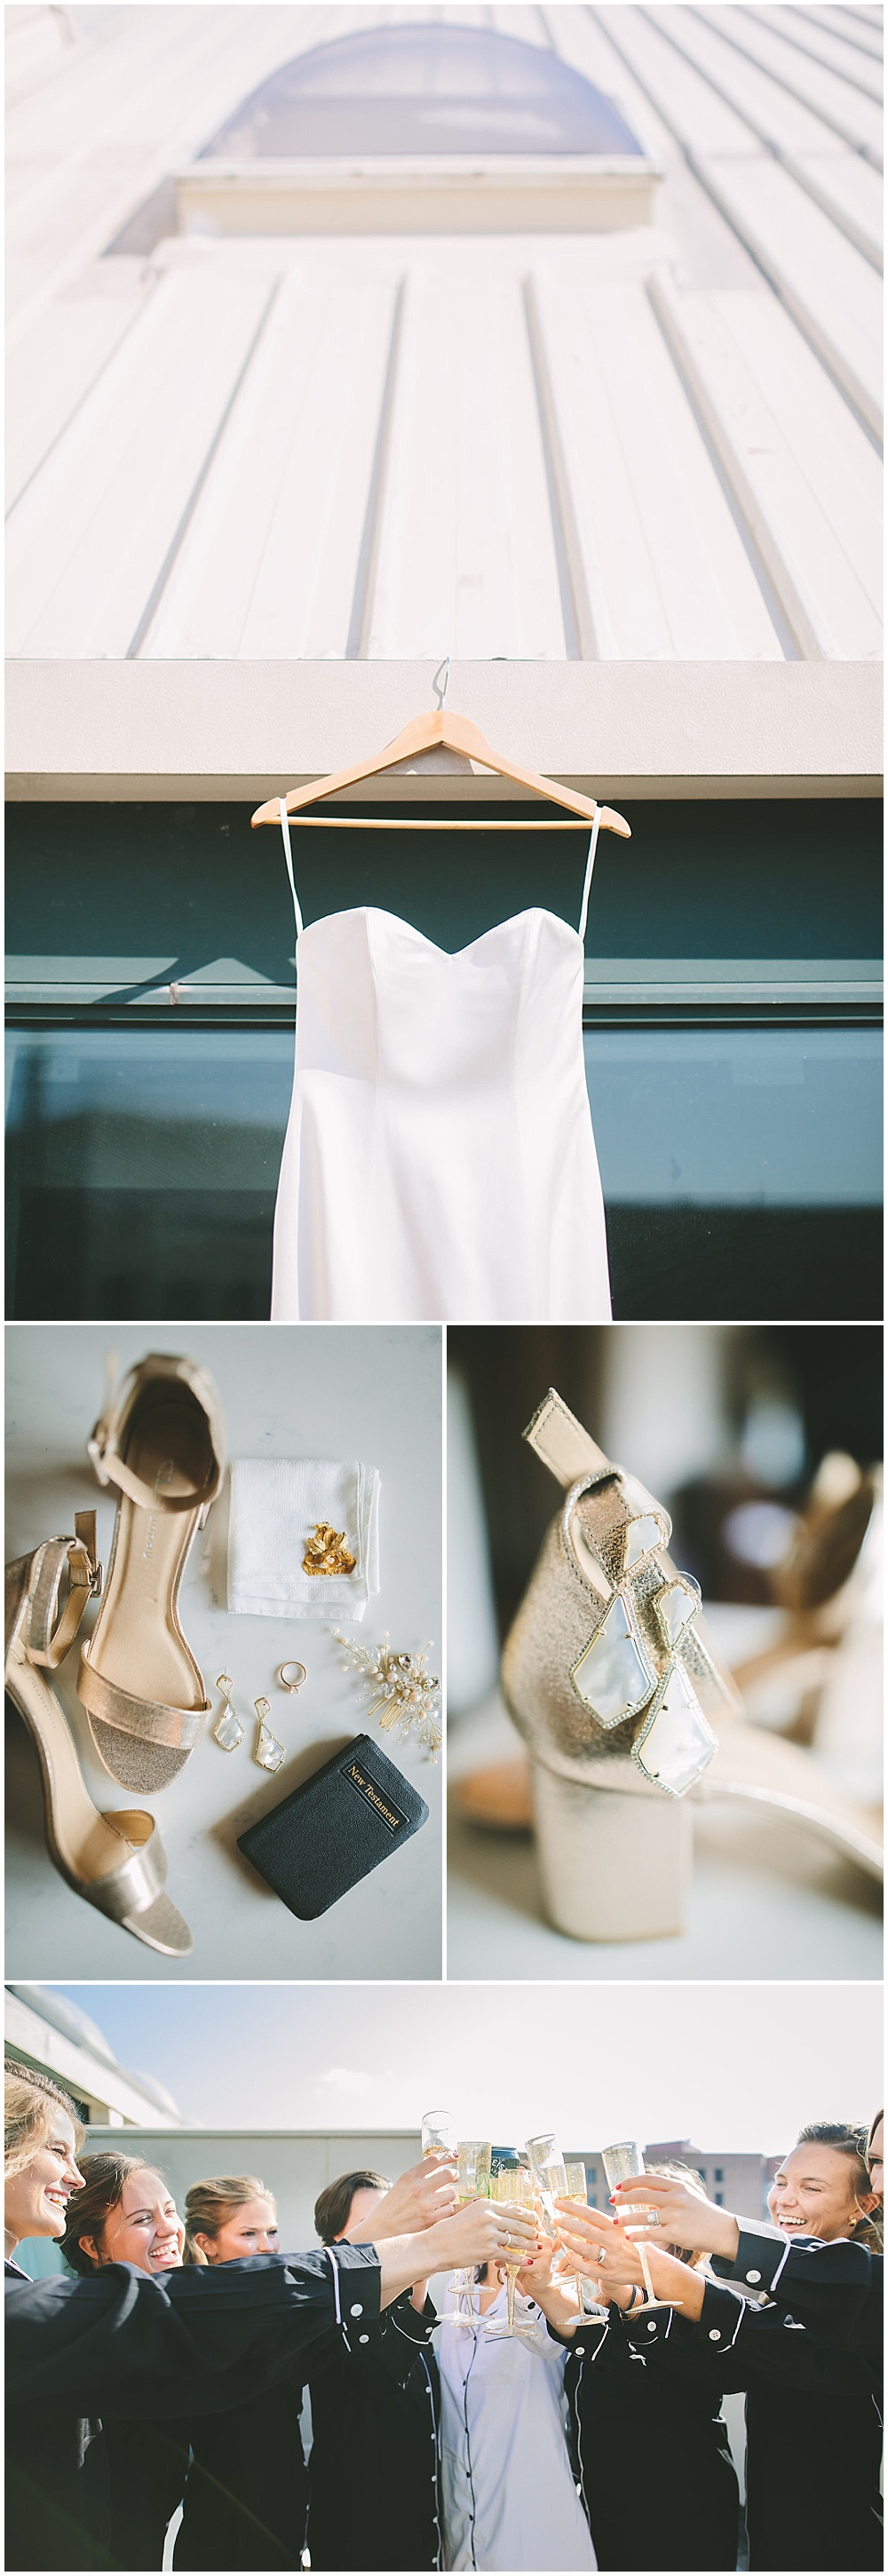 A timeless, modern wedding celebration at the Indianapolis Public Library. Bridal details, including a simple white sweatheart gown, gold shoes and a special moment with bridesmaids. | Jessica Dum Wedding Coordination